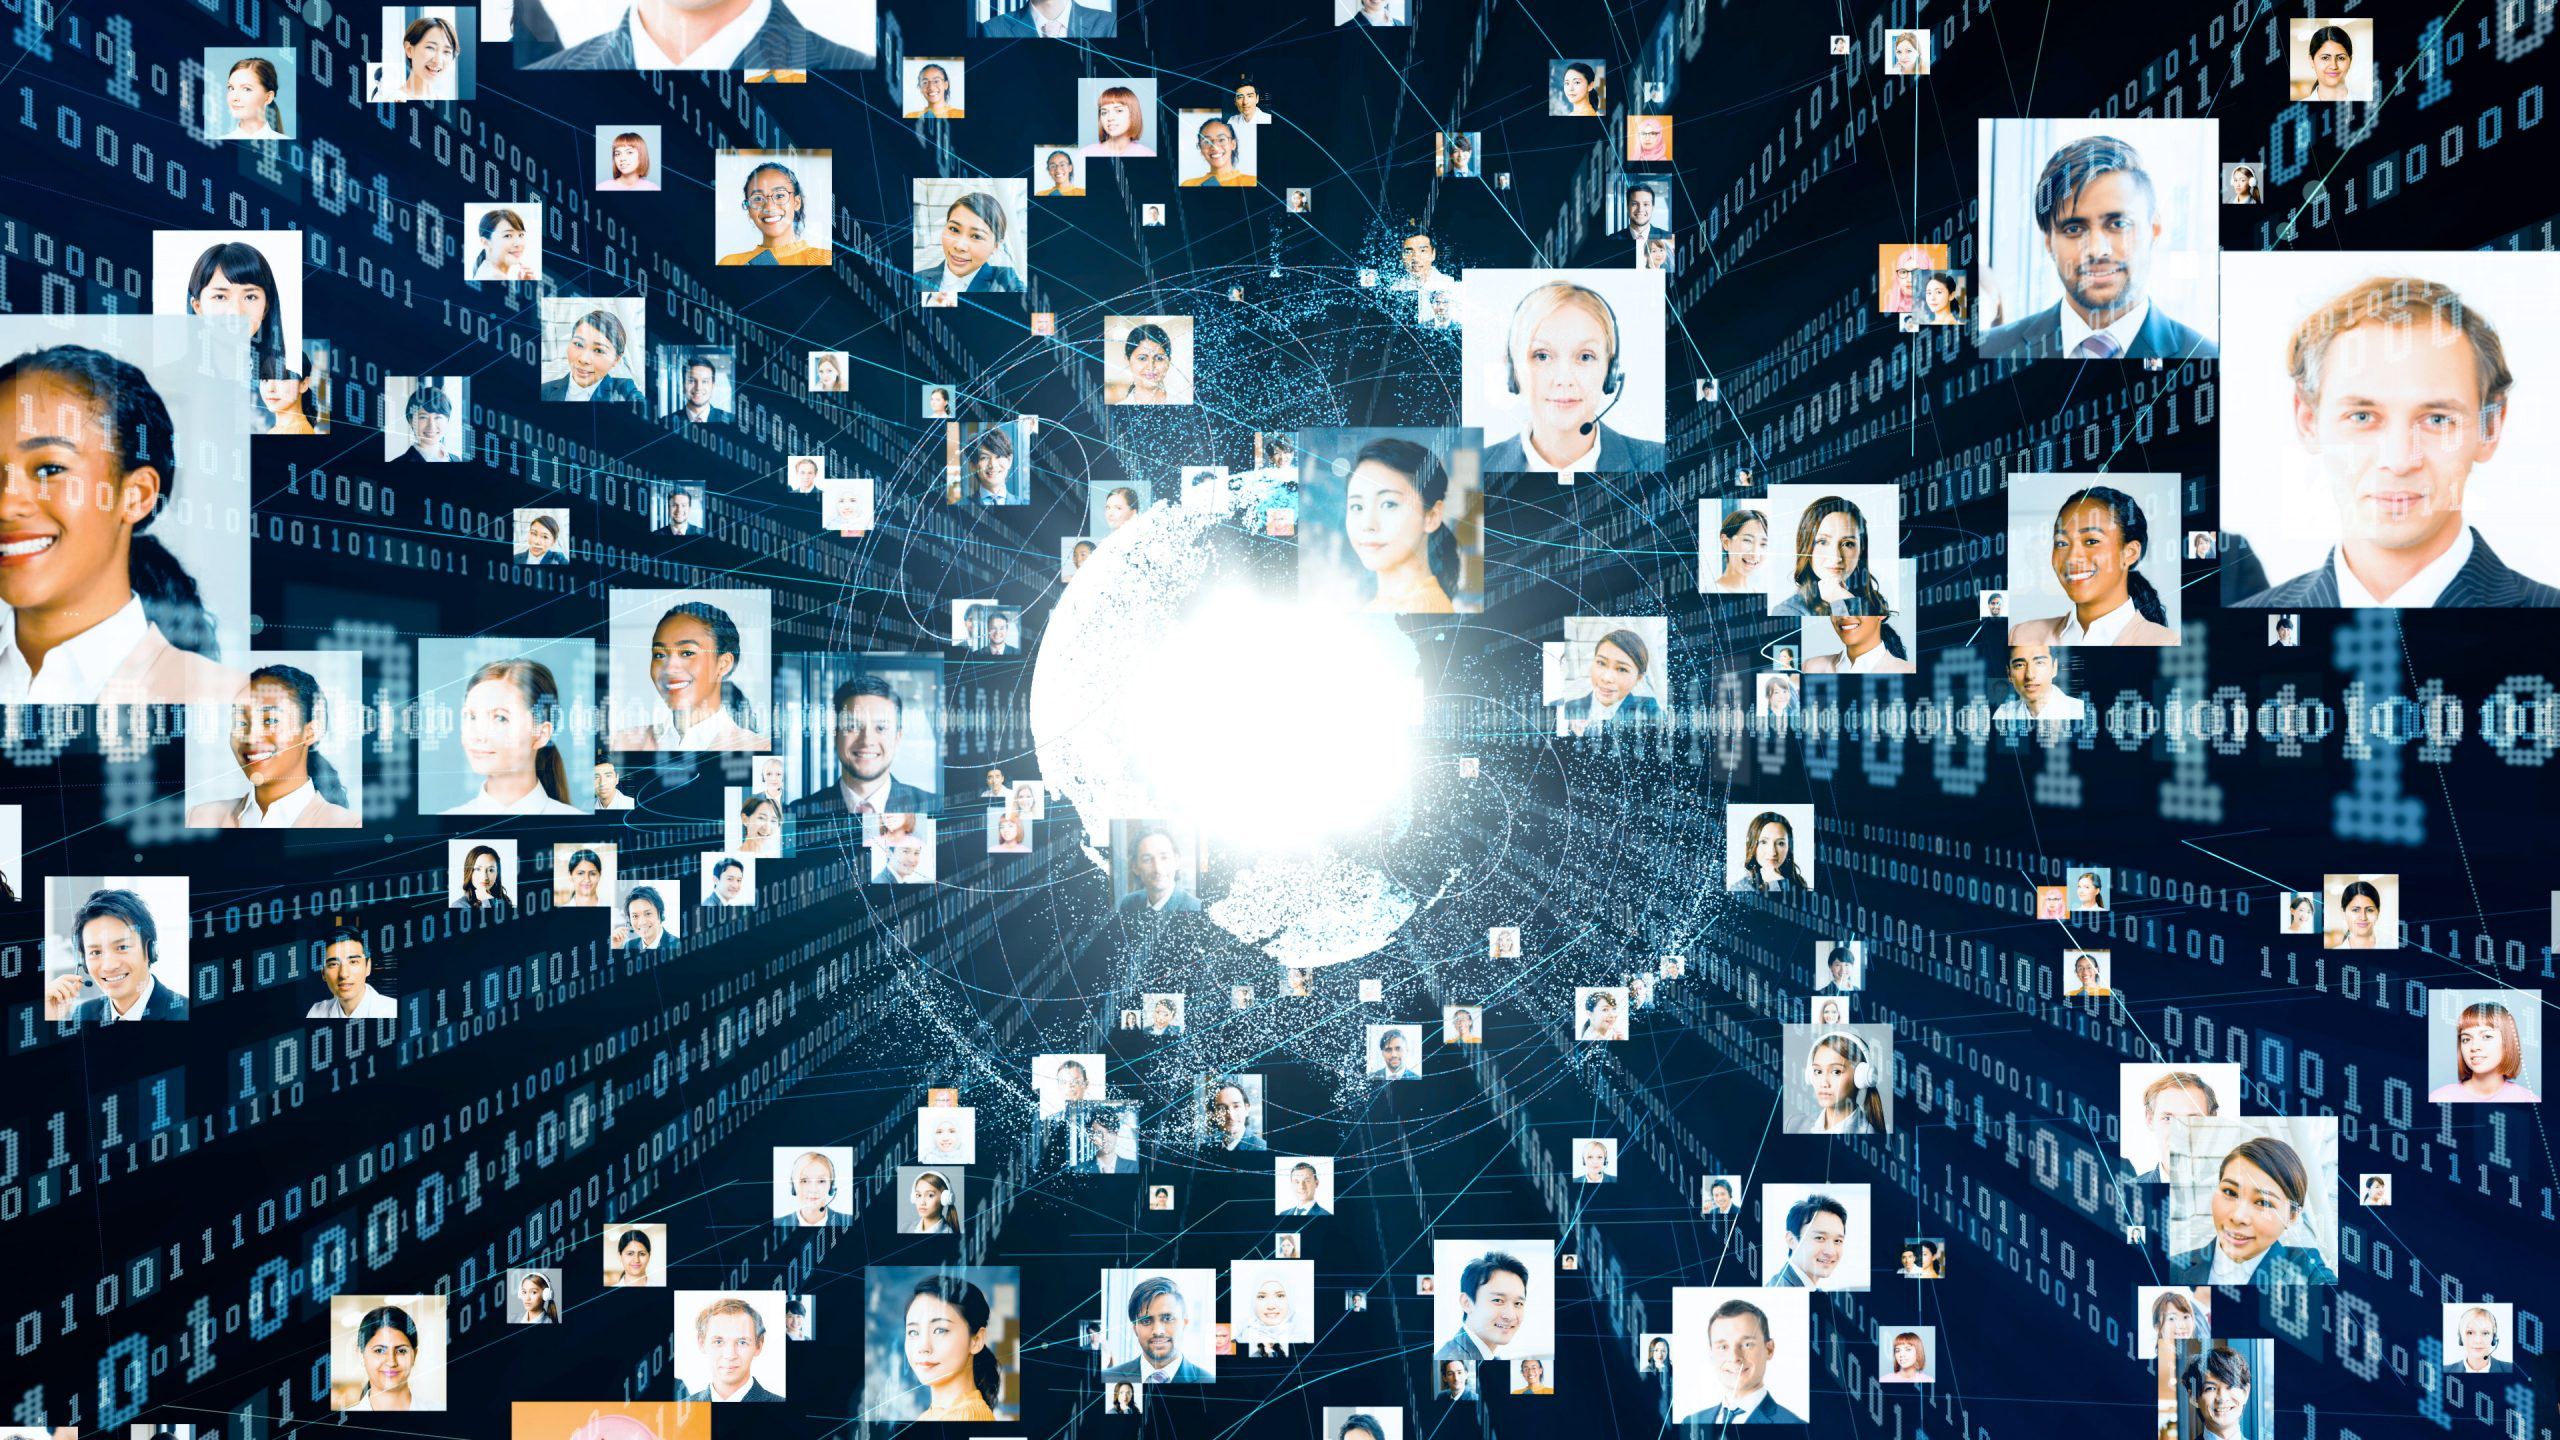 Numerous headshots of people displayed against black background with blue 1s and 0s indicating a web of information. Global communication network concept.